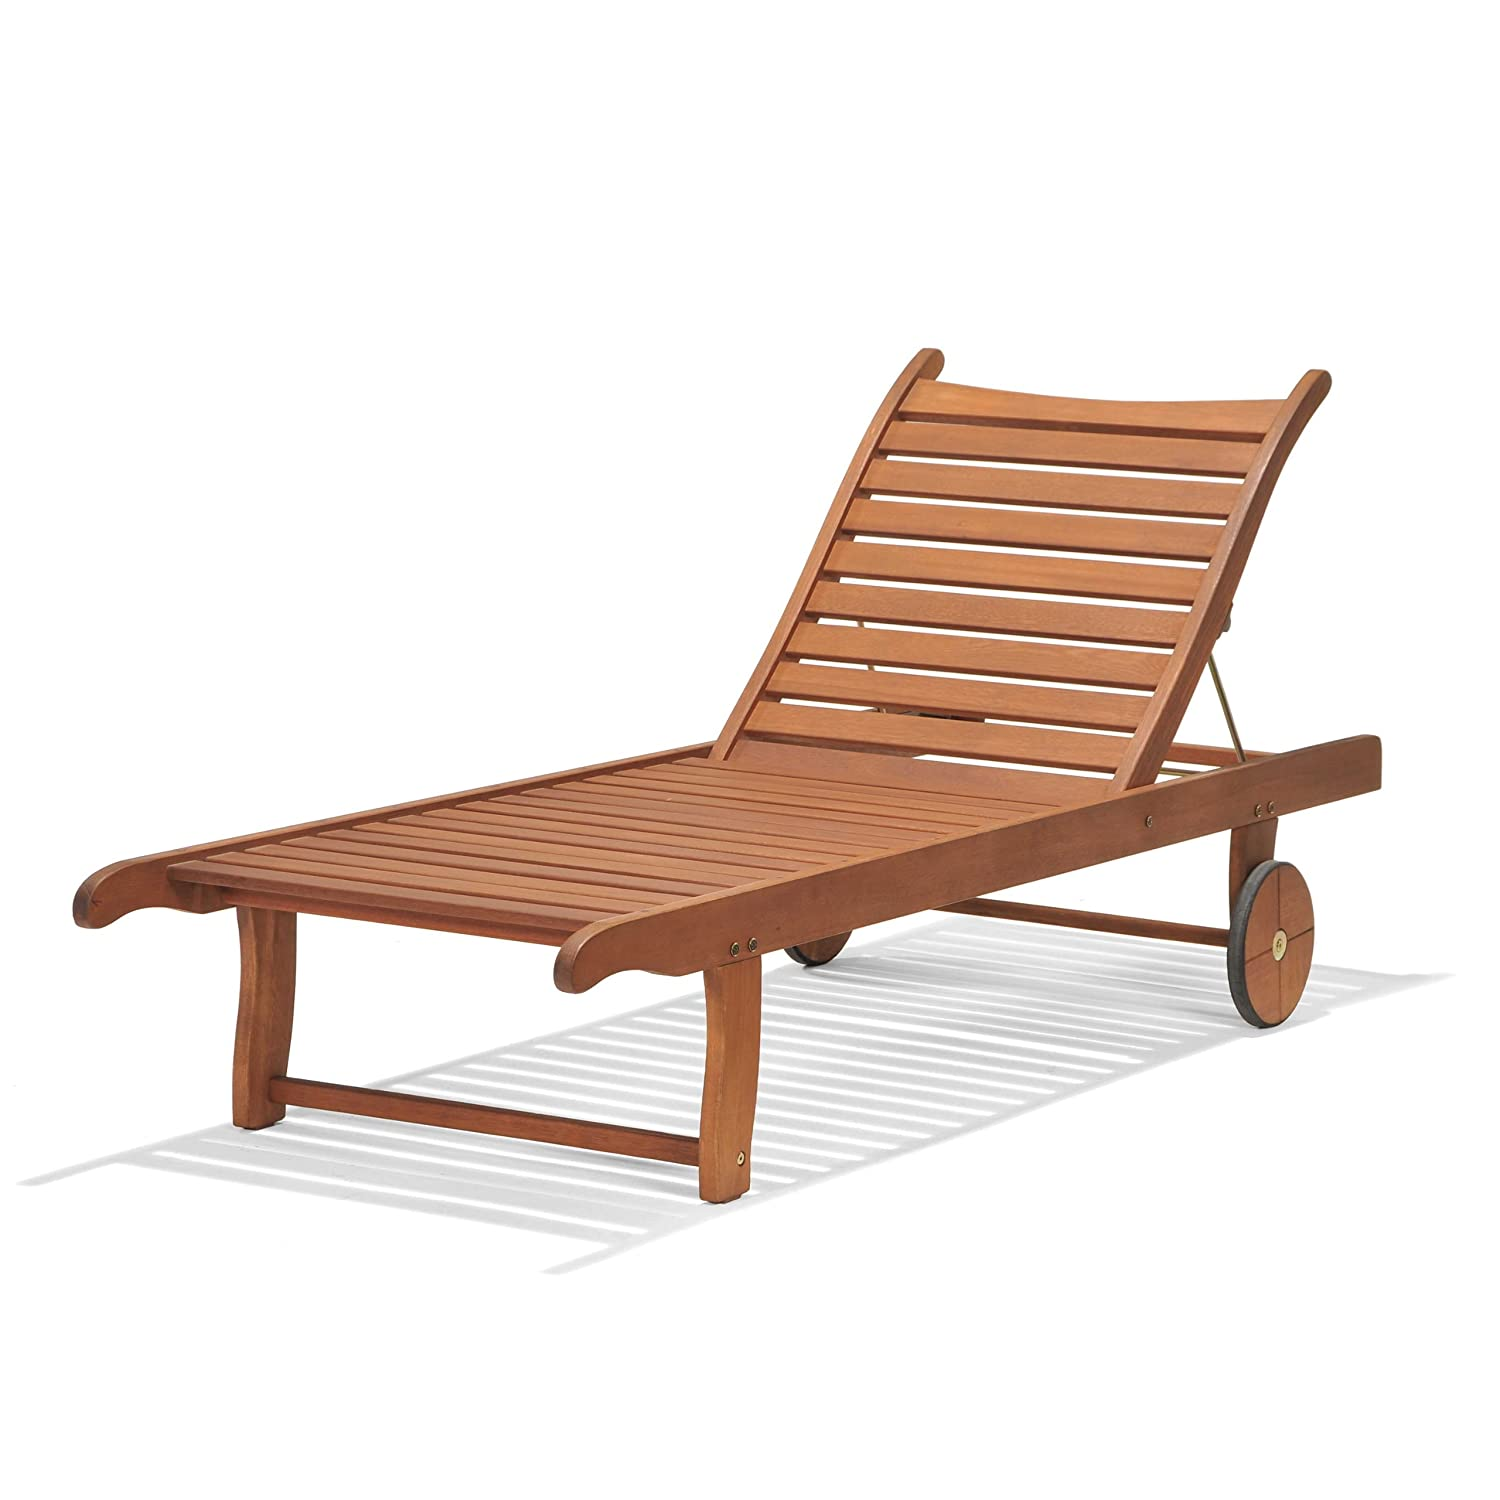 garden sunlounger wooden furniture chair outdoor patio. Black Bedroom Furniture Sets. Home Design Ideas